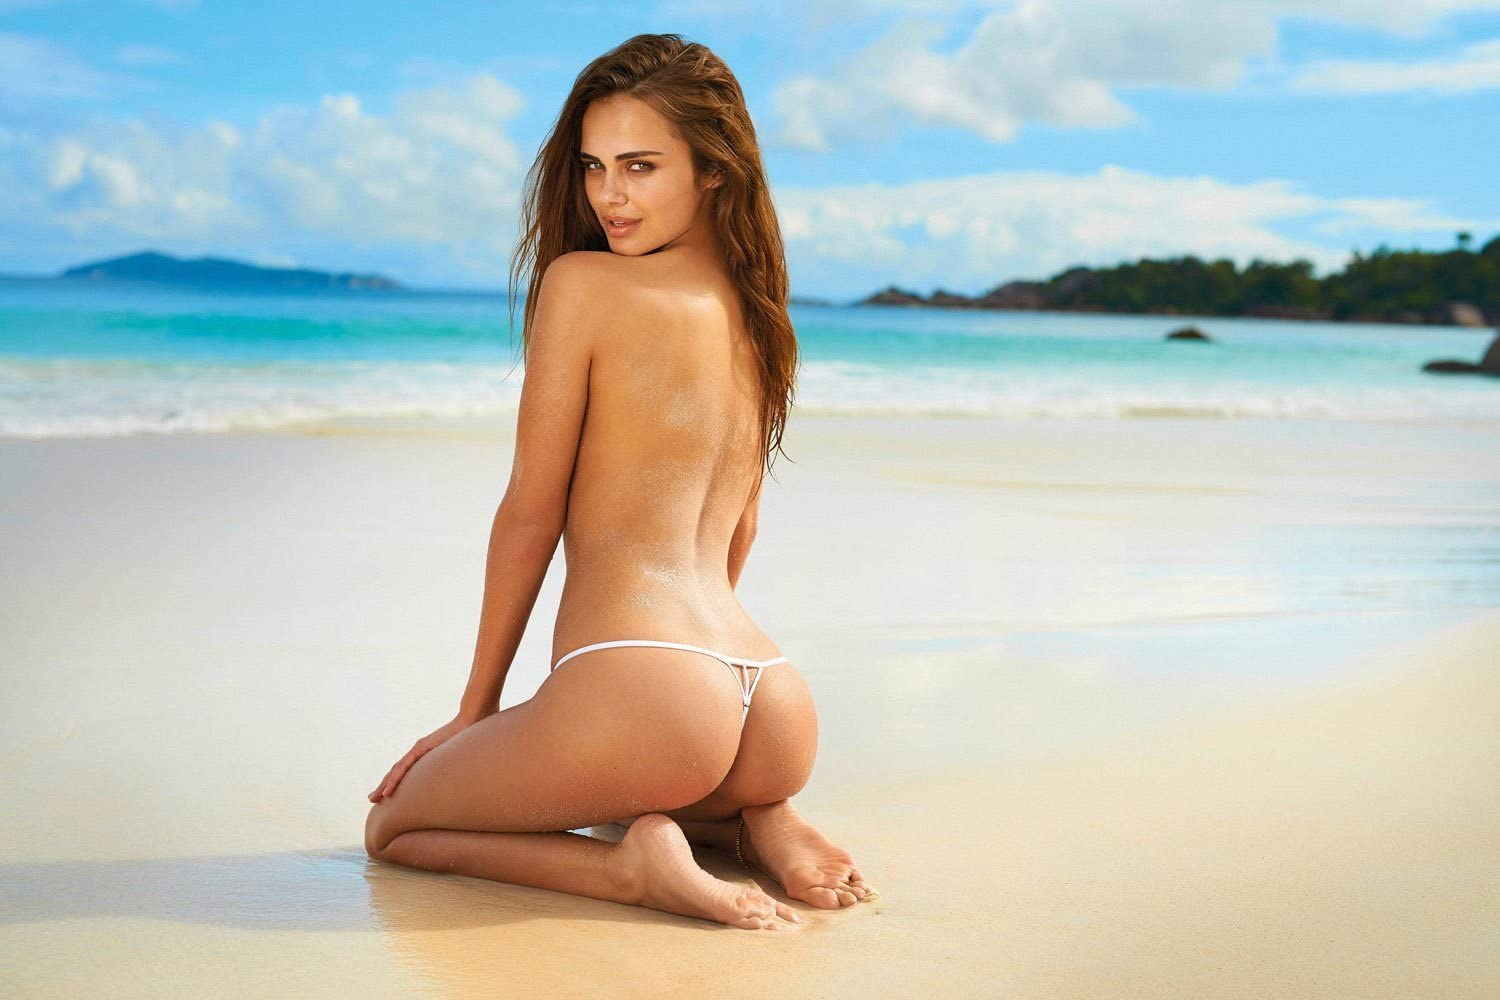 Xenia Deli Hot Tanga Wallpapers - Xenia Deli Hot Tanga Wallpapers